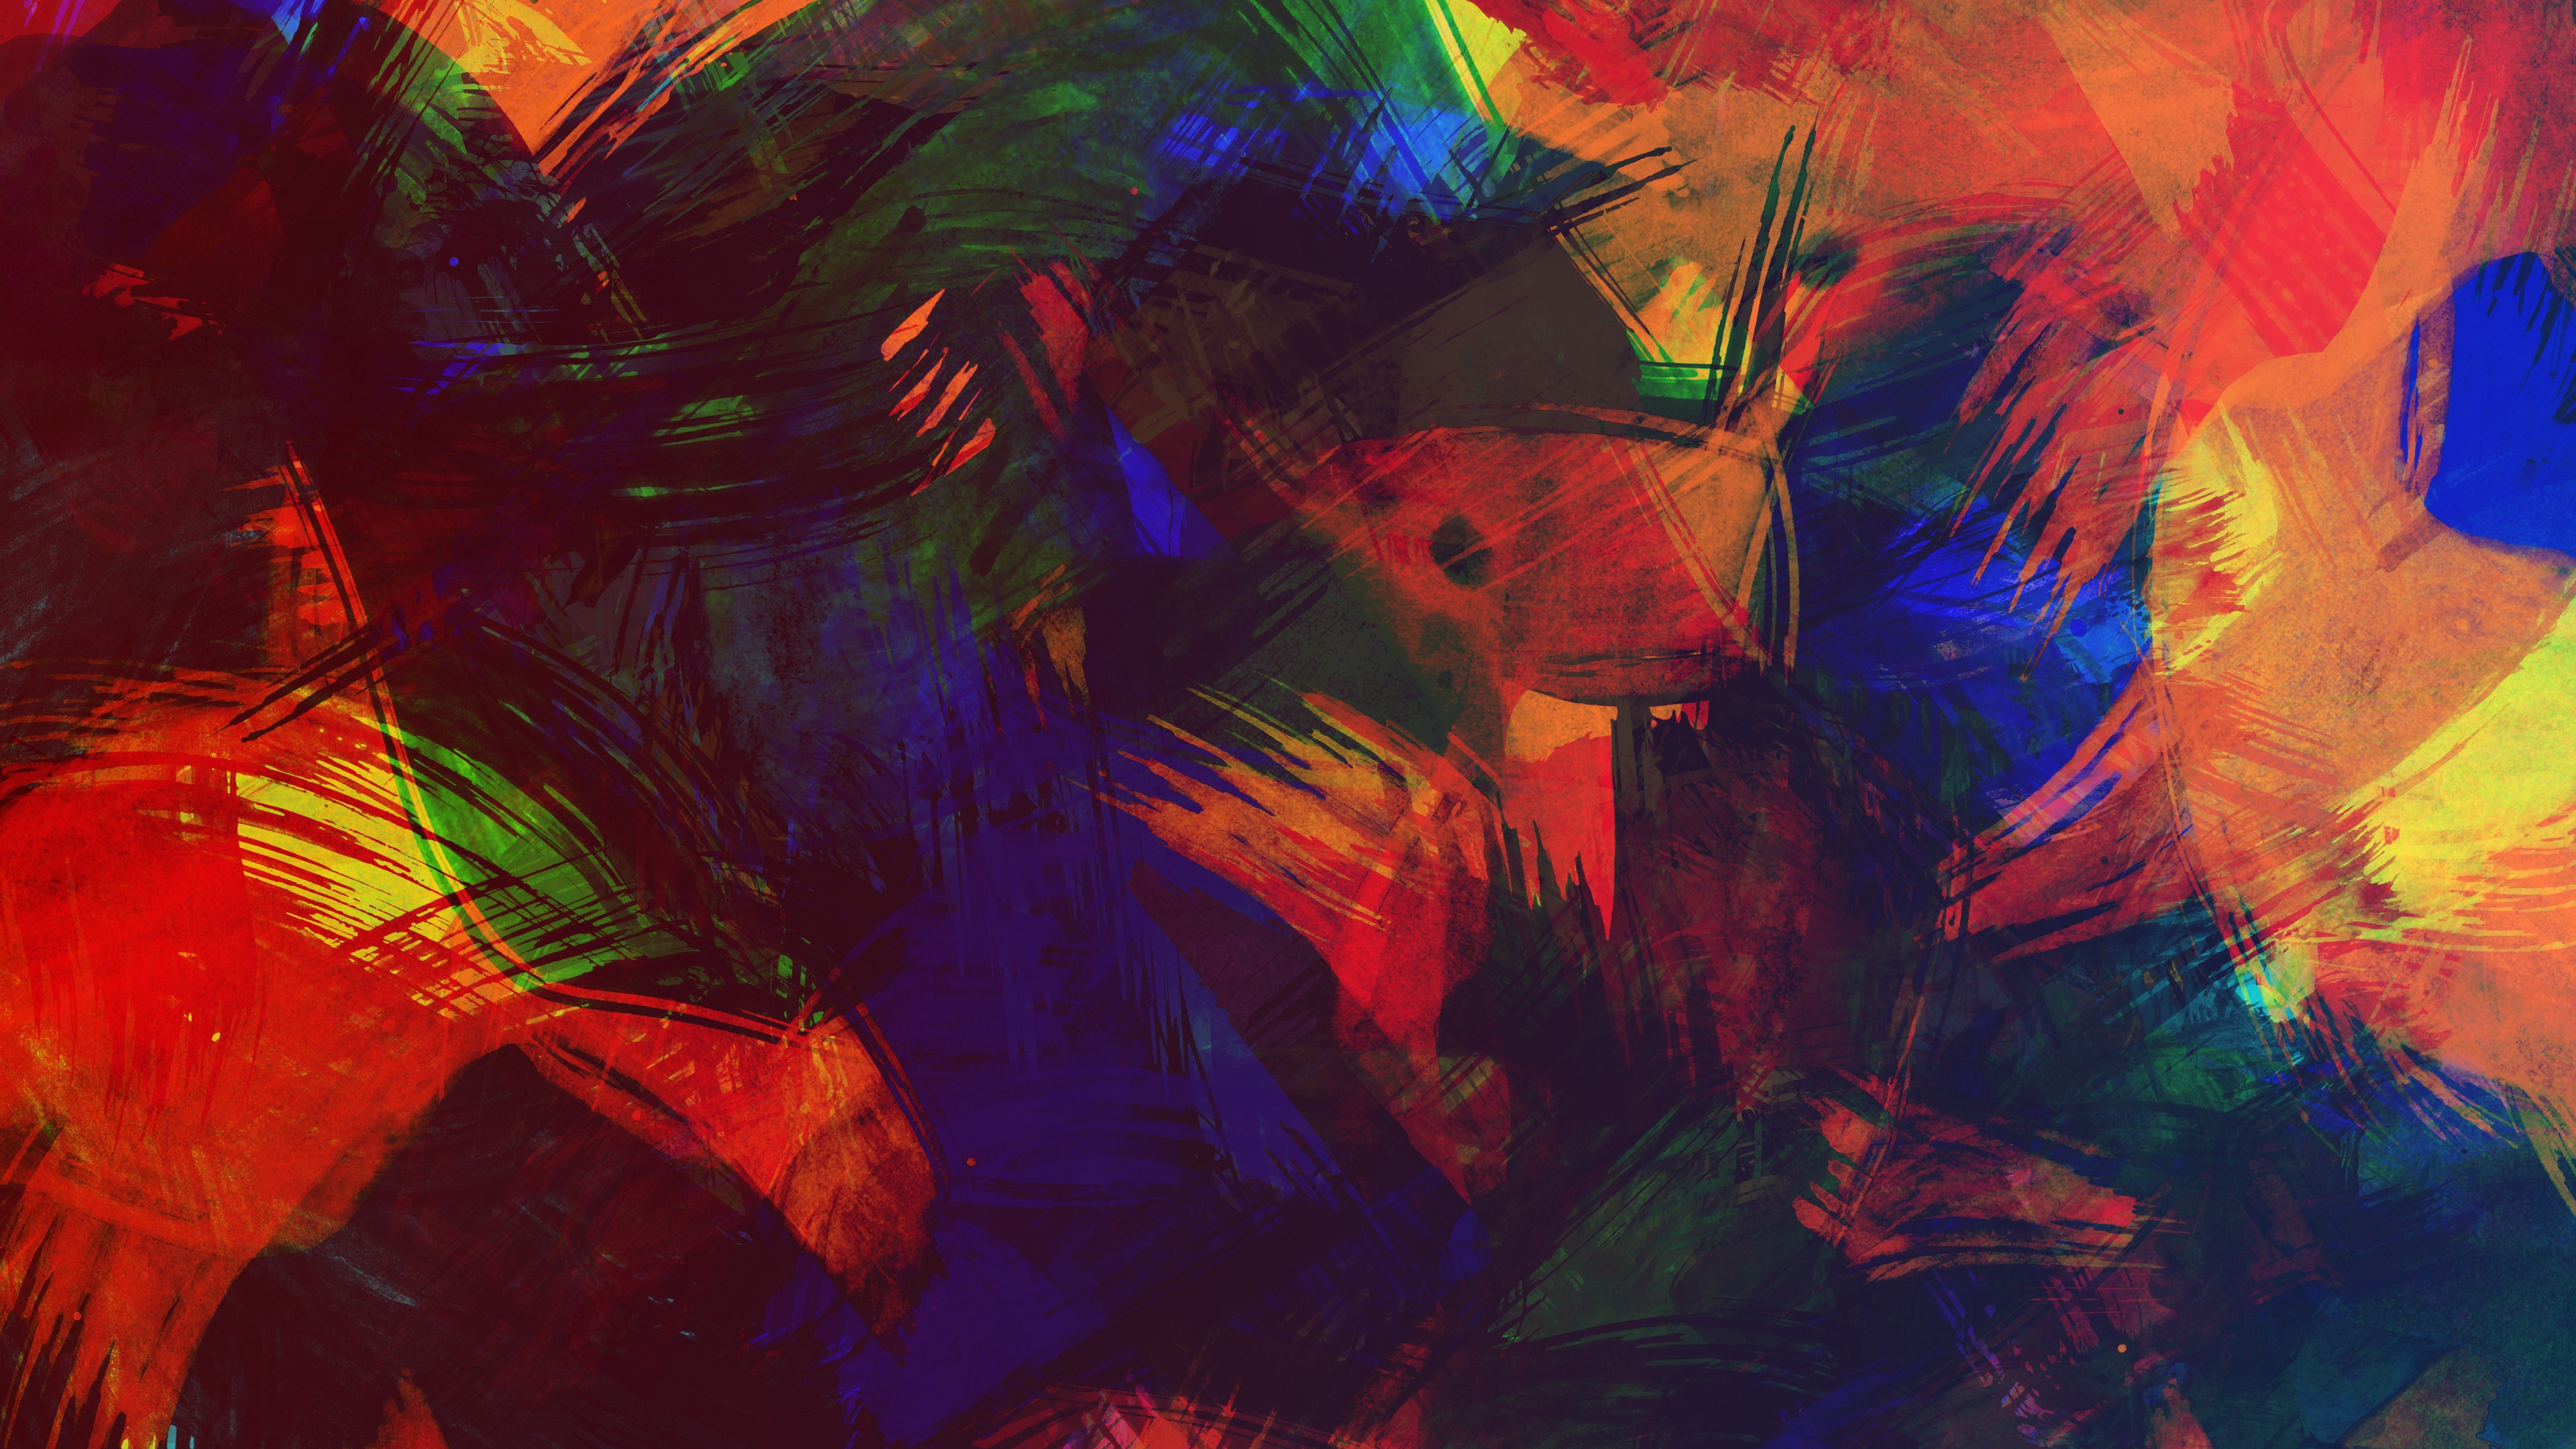 texture abstraction paint surface 4k 1539369933 - texture, abstraction, paint, surface 4k - Texture, Paint, Abstraction